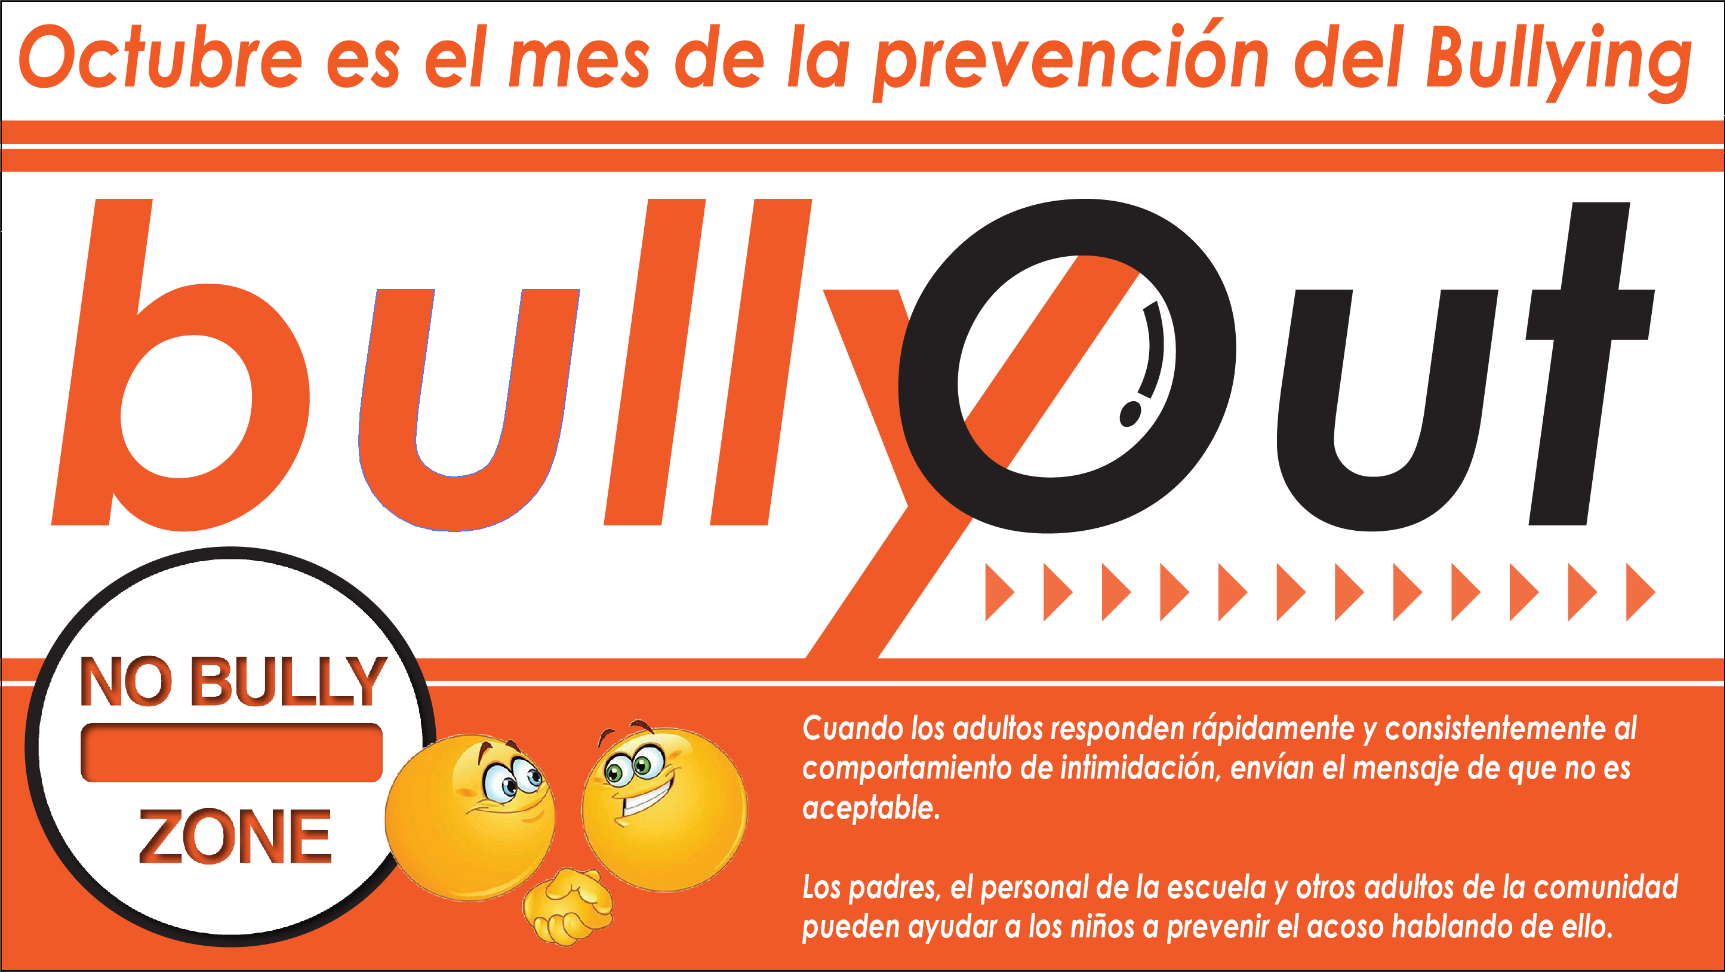 Bully prevention month graphic in Spanish